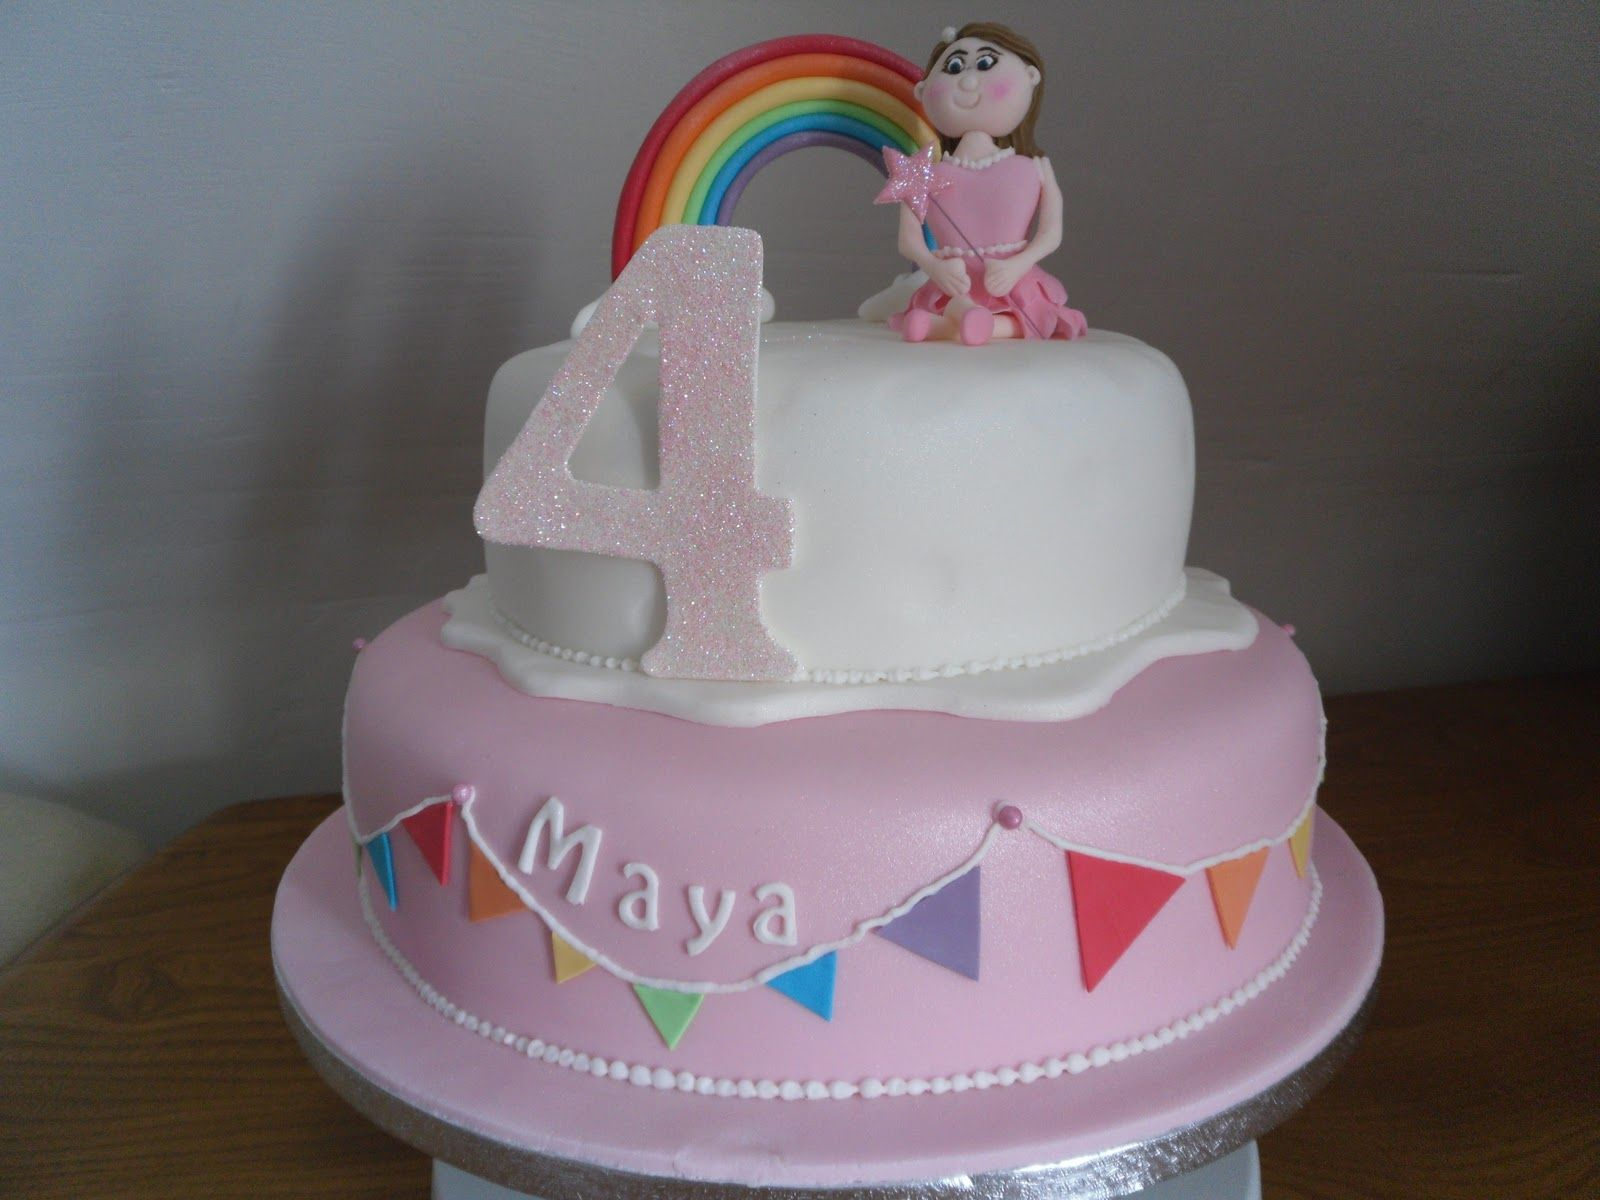 'Rainbow Princess Birthday Cake' as requested by Miss 4